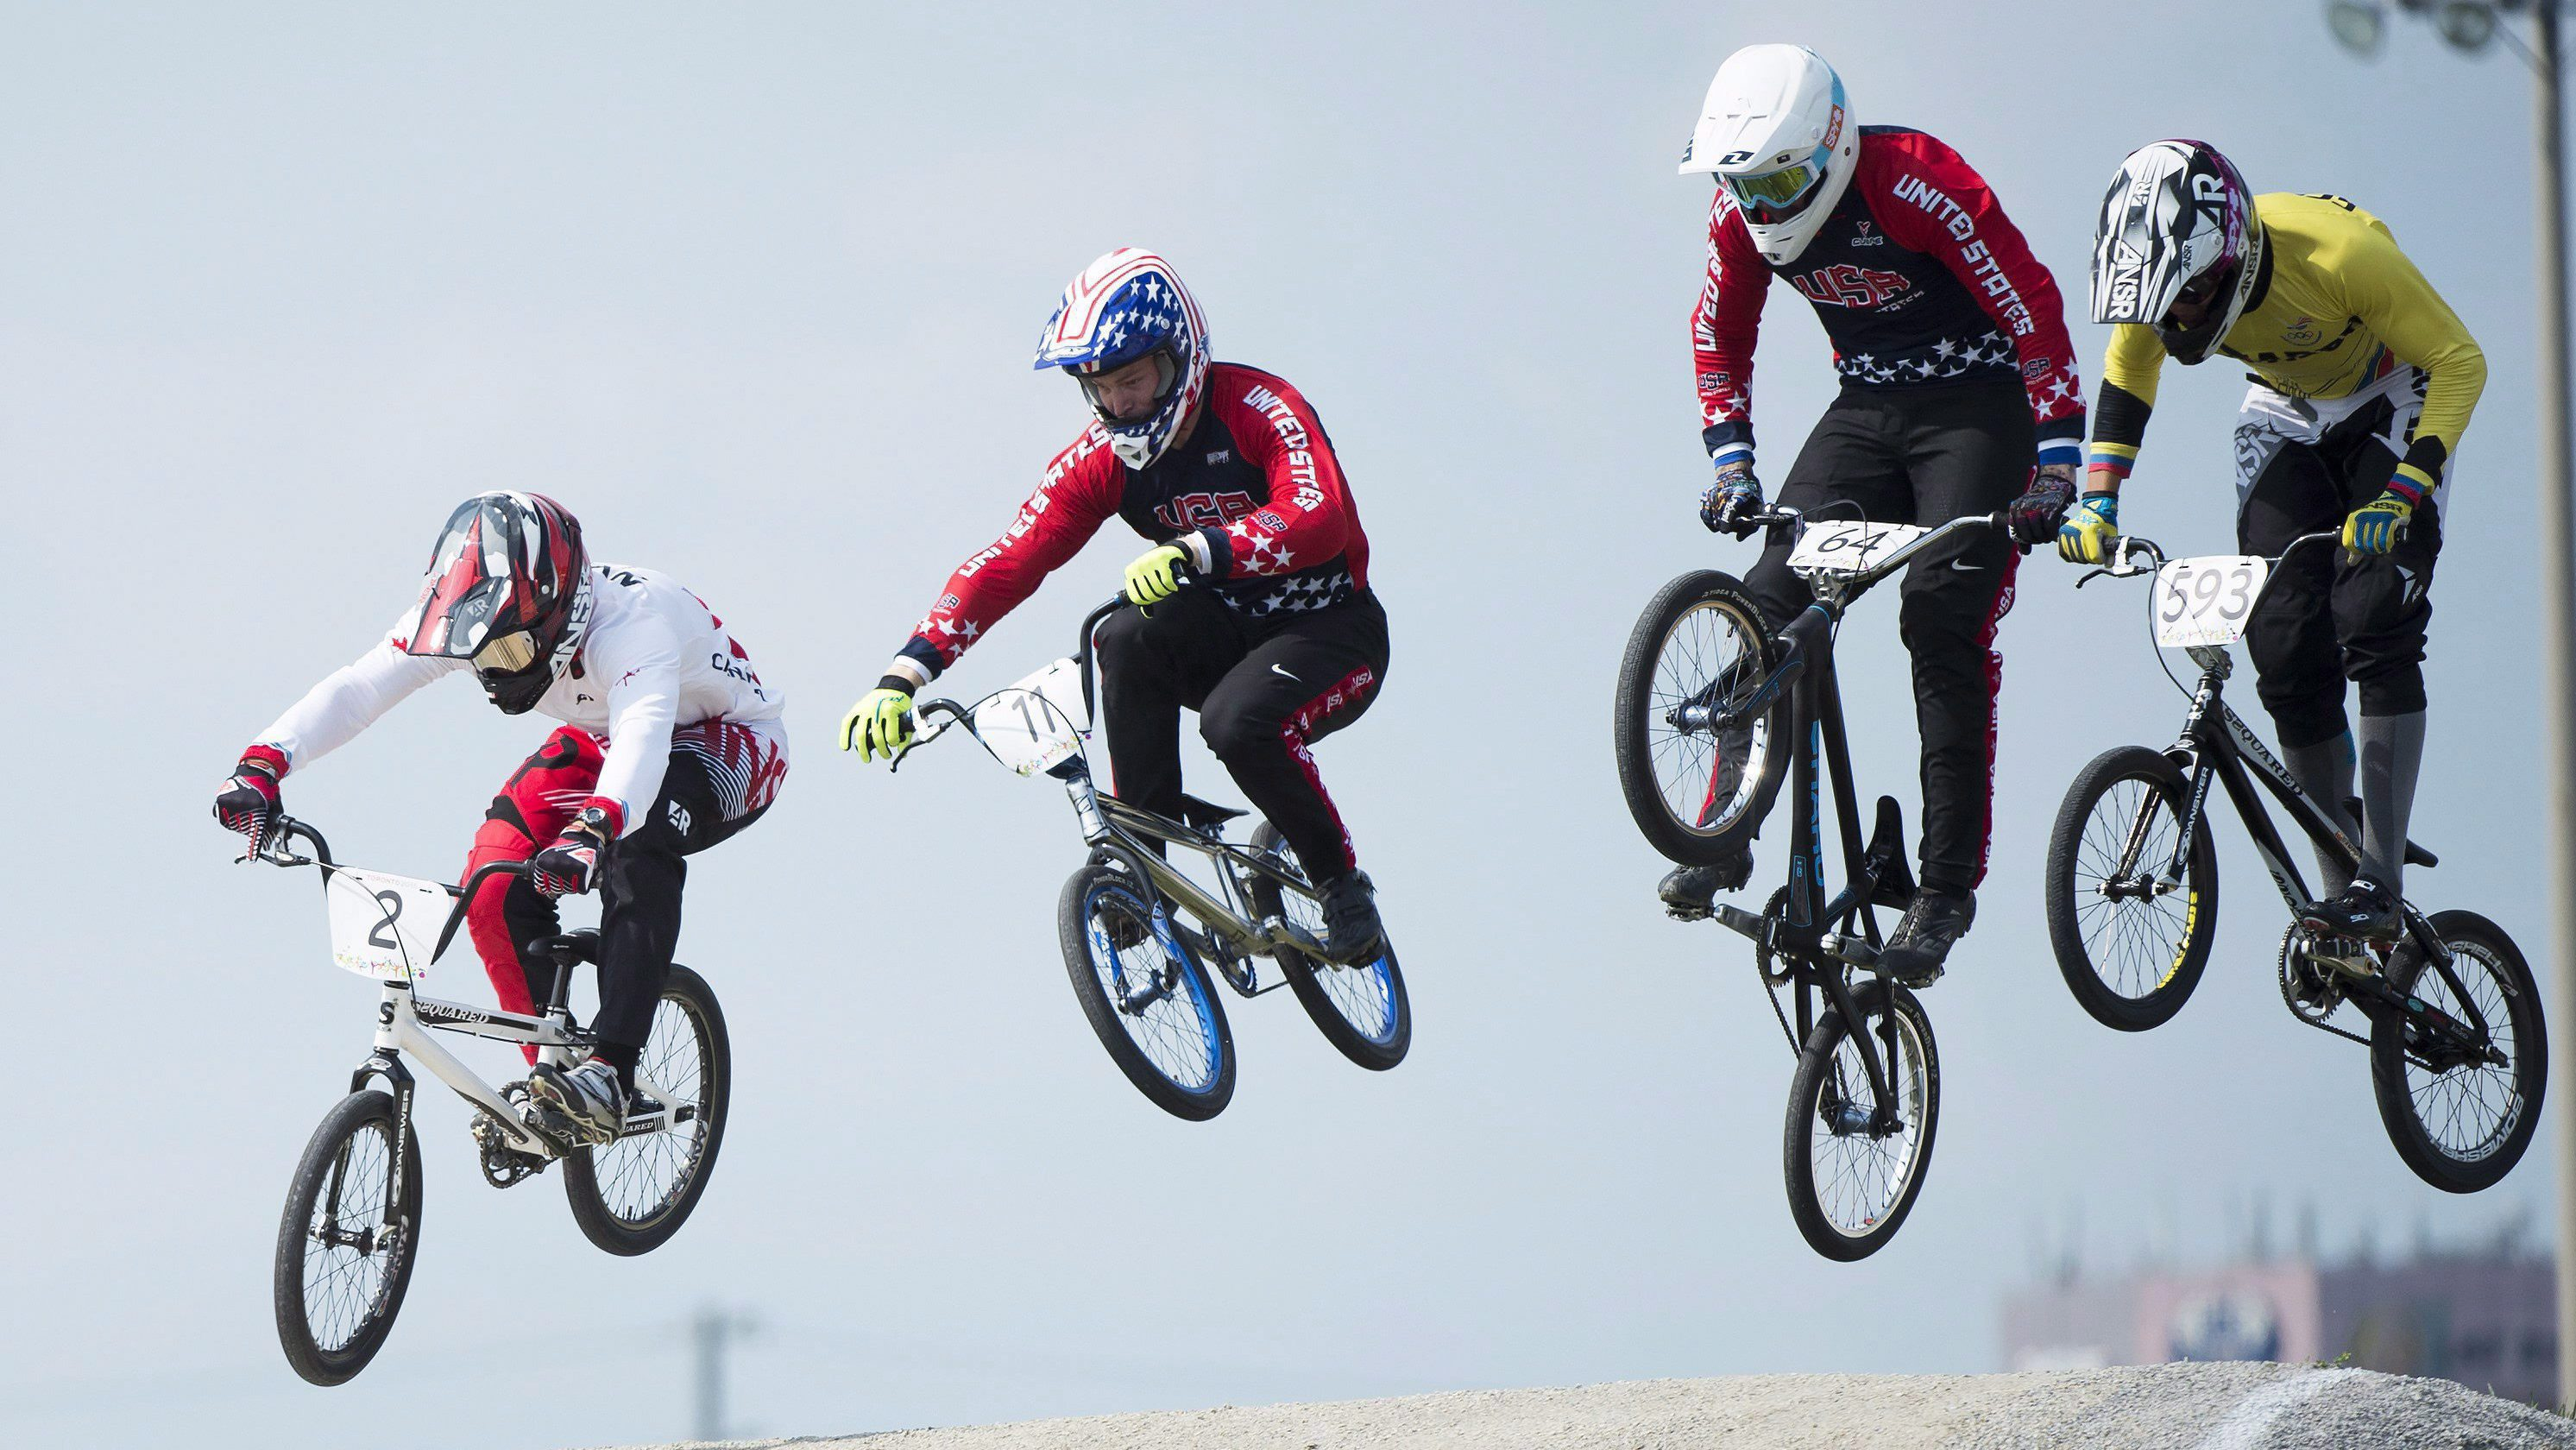 Canadian Tory Nyhaug, left, leads the pack over a jump during men's BMX finals at the Pan American Games in Toronto on Saturday, July 11, 2015. Nyhaug went on the win gold.